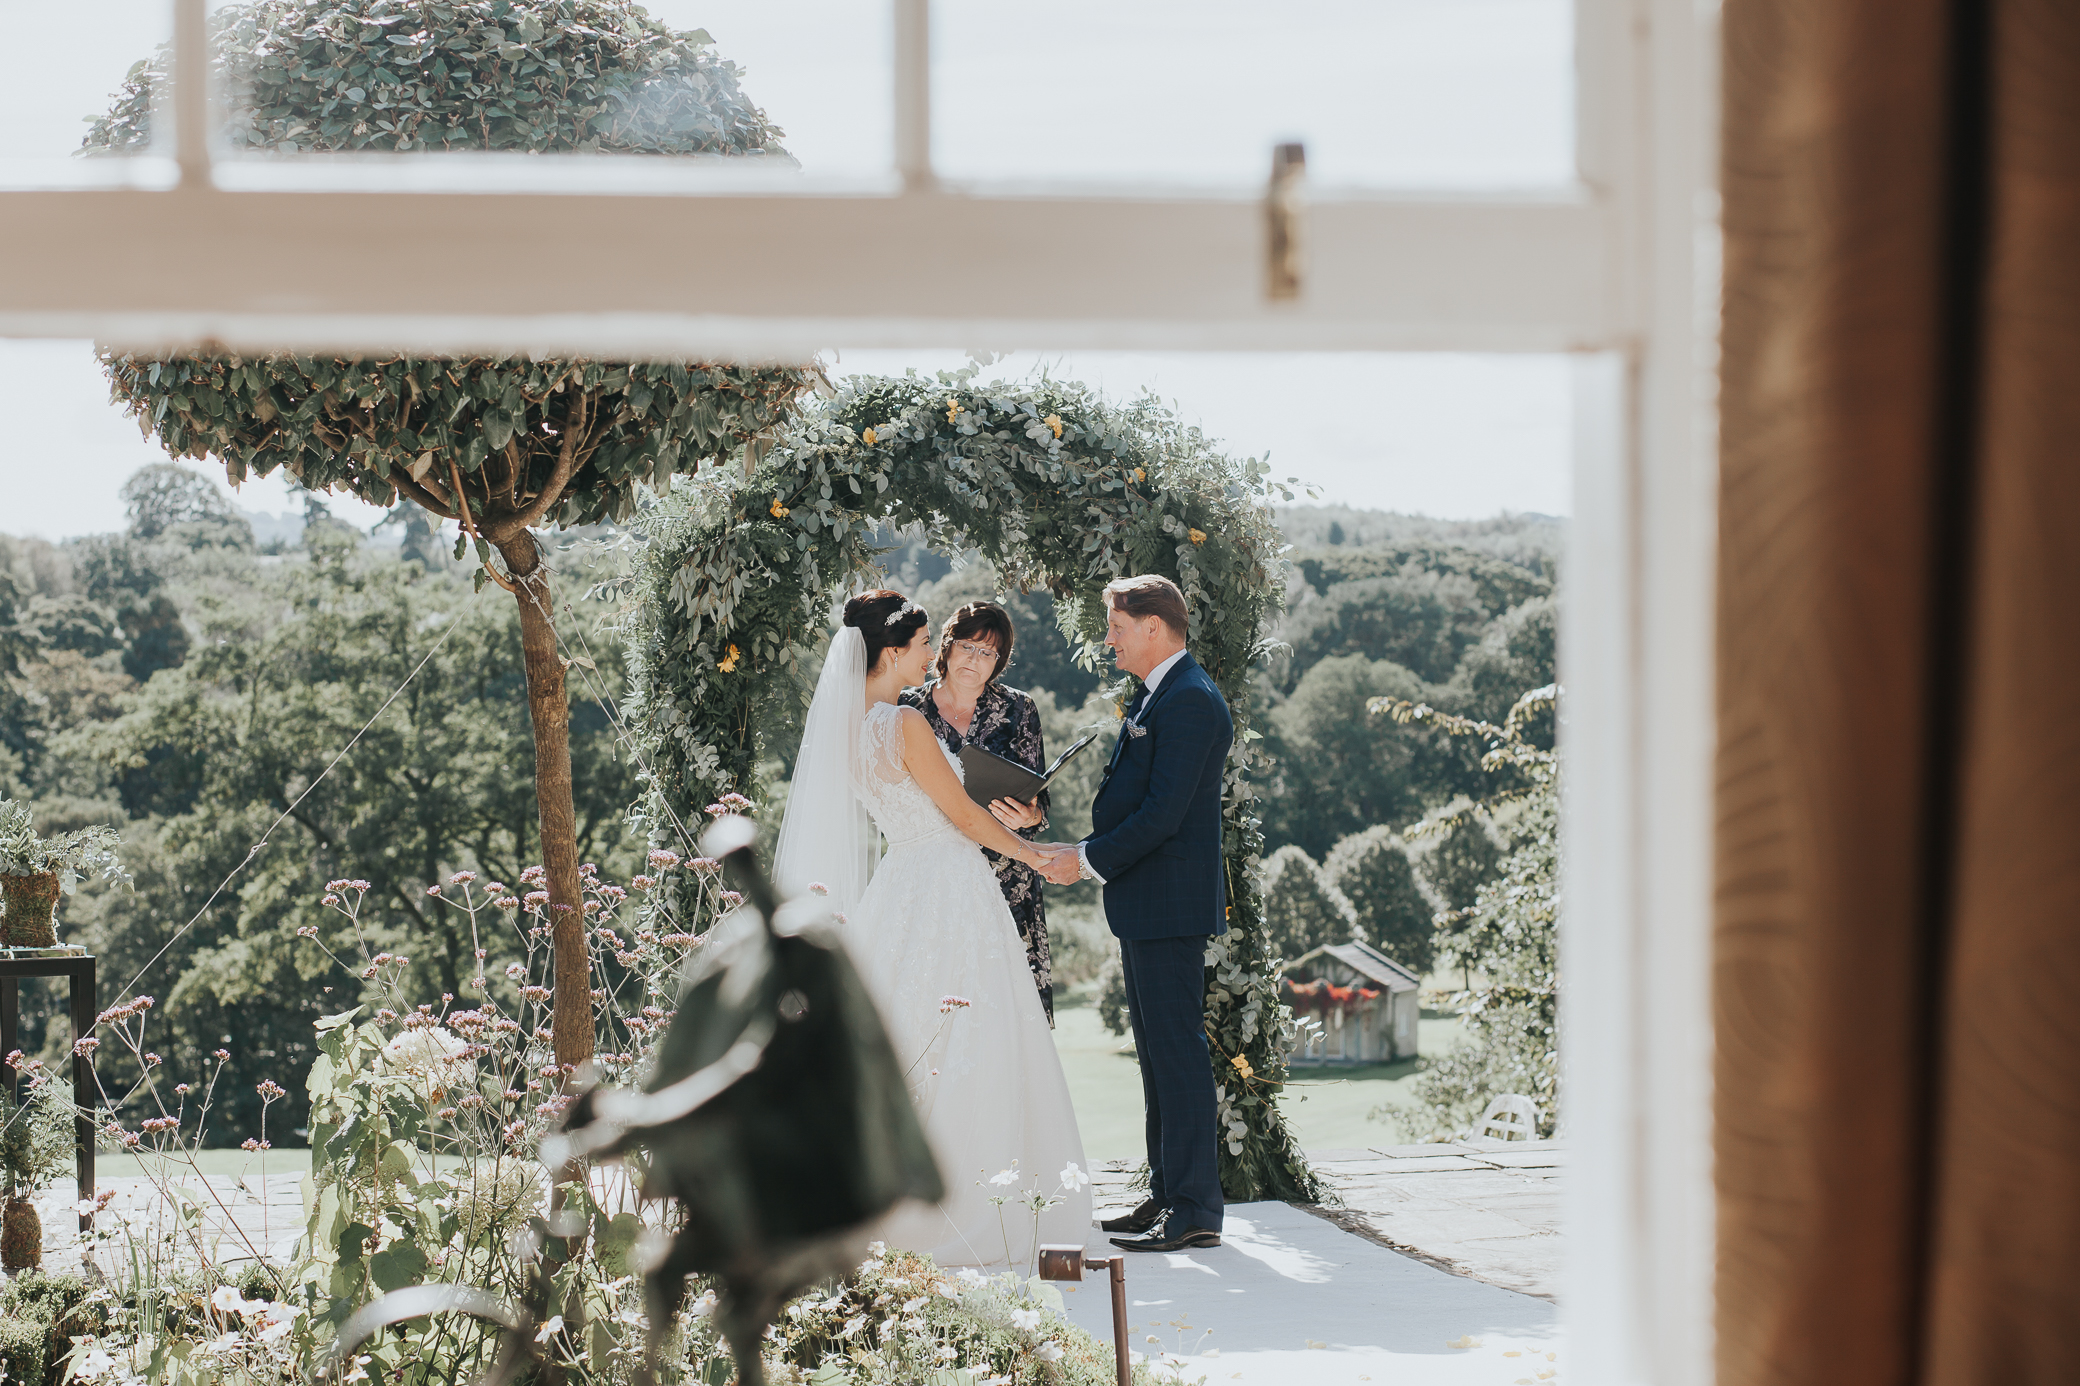 a beautiful Ann Marie and Mark - wedding on a stunning September day - outdoor ceremony that included a Celtic hand-fasting'